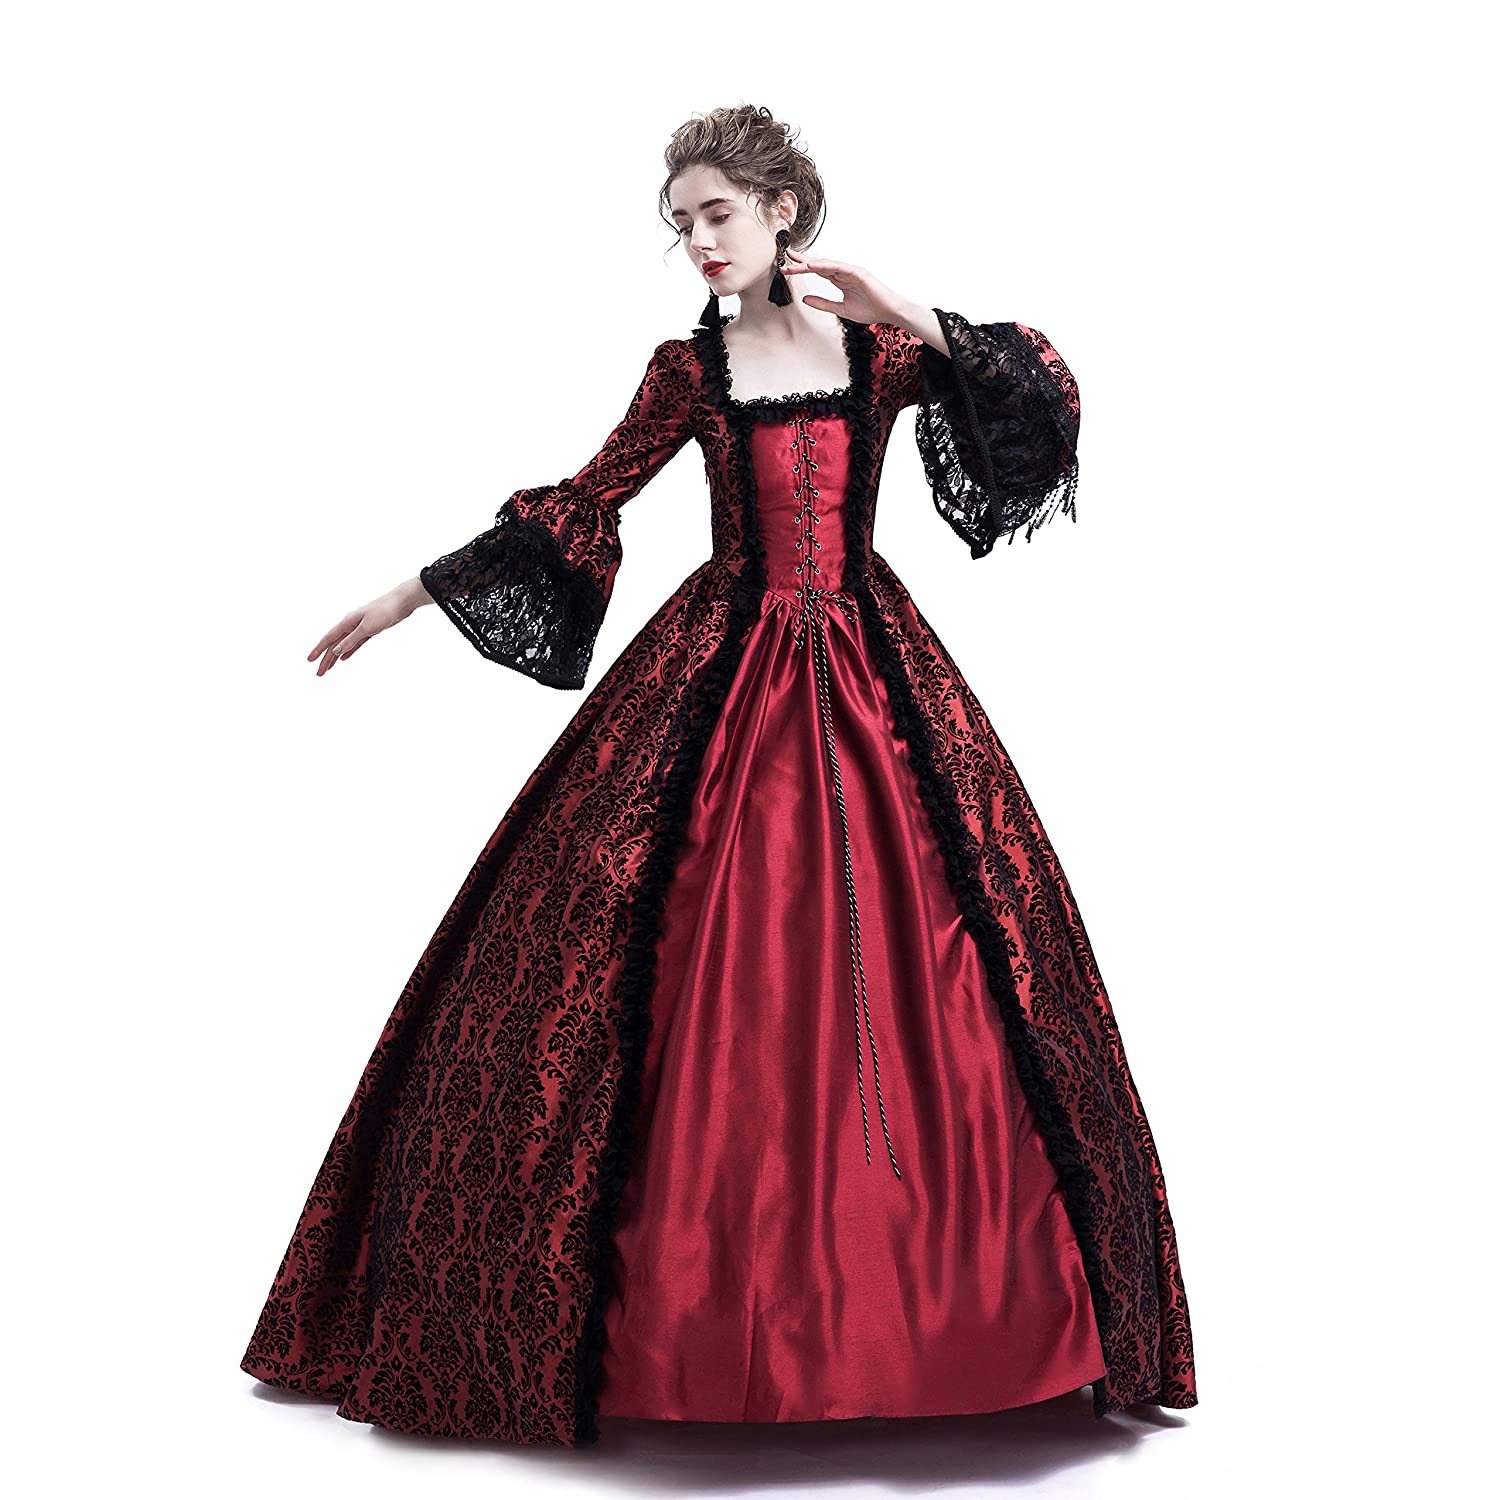 0ad3a2131f Amazon.com: D-RoseBlooming Red Masked Masquerade Ball Gown Gothic ...